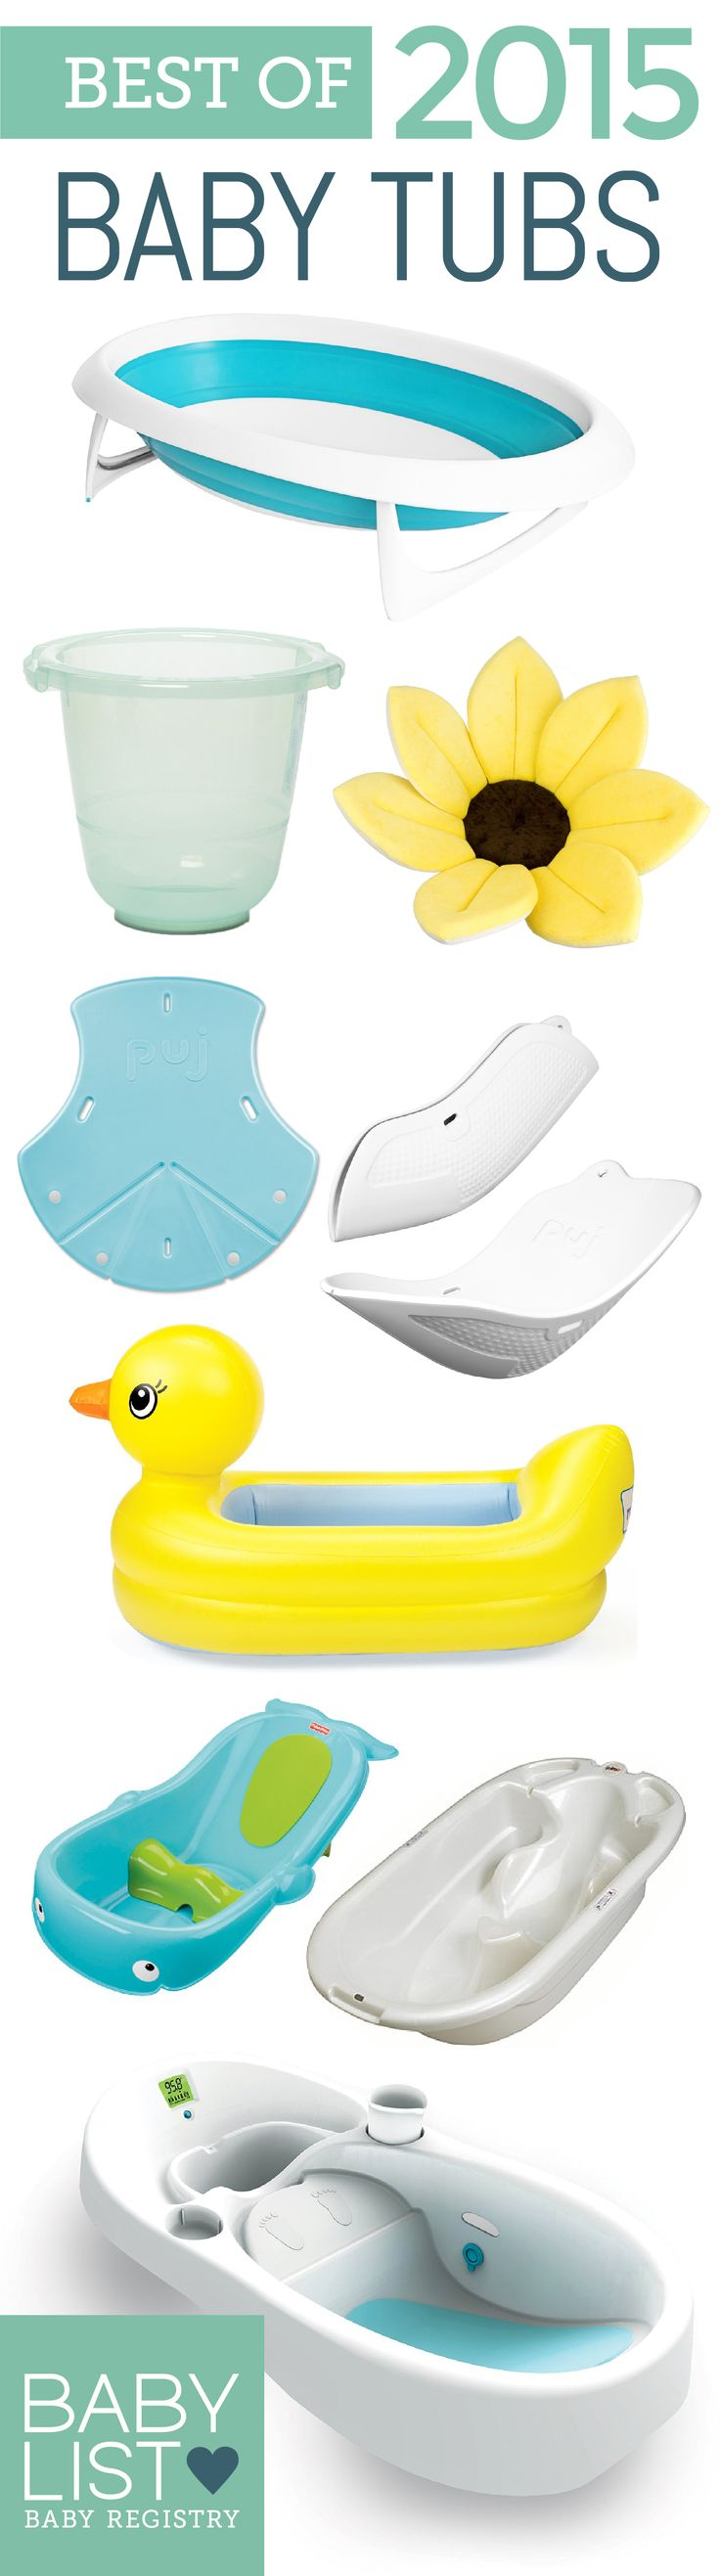 What's better than the kitchen sink? These bathtubs that are both adorable and extremely useful for keeping your baby safe and clean. Check out our top picks here!